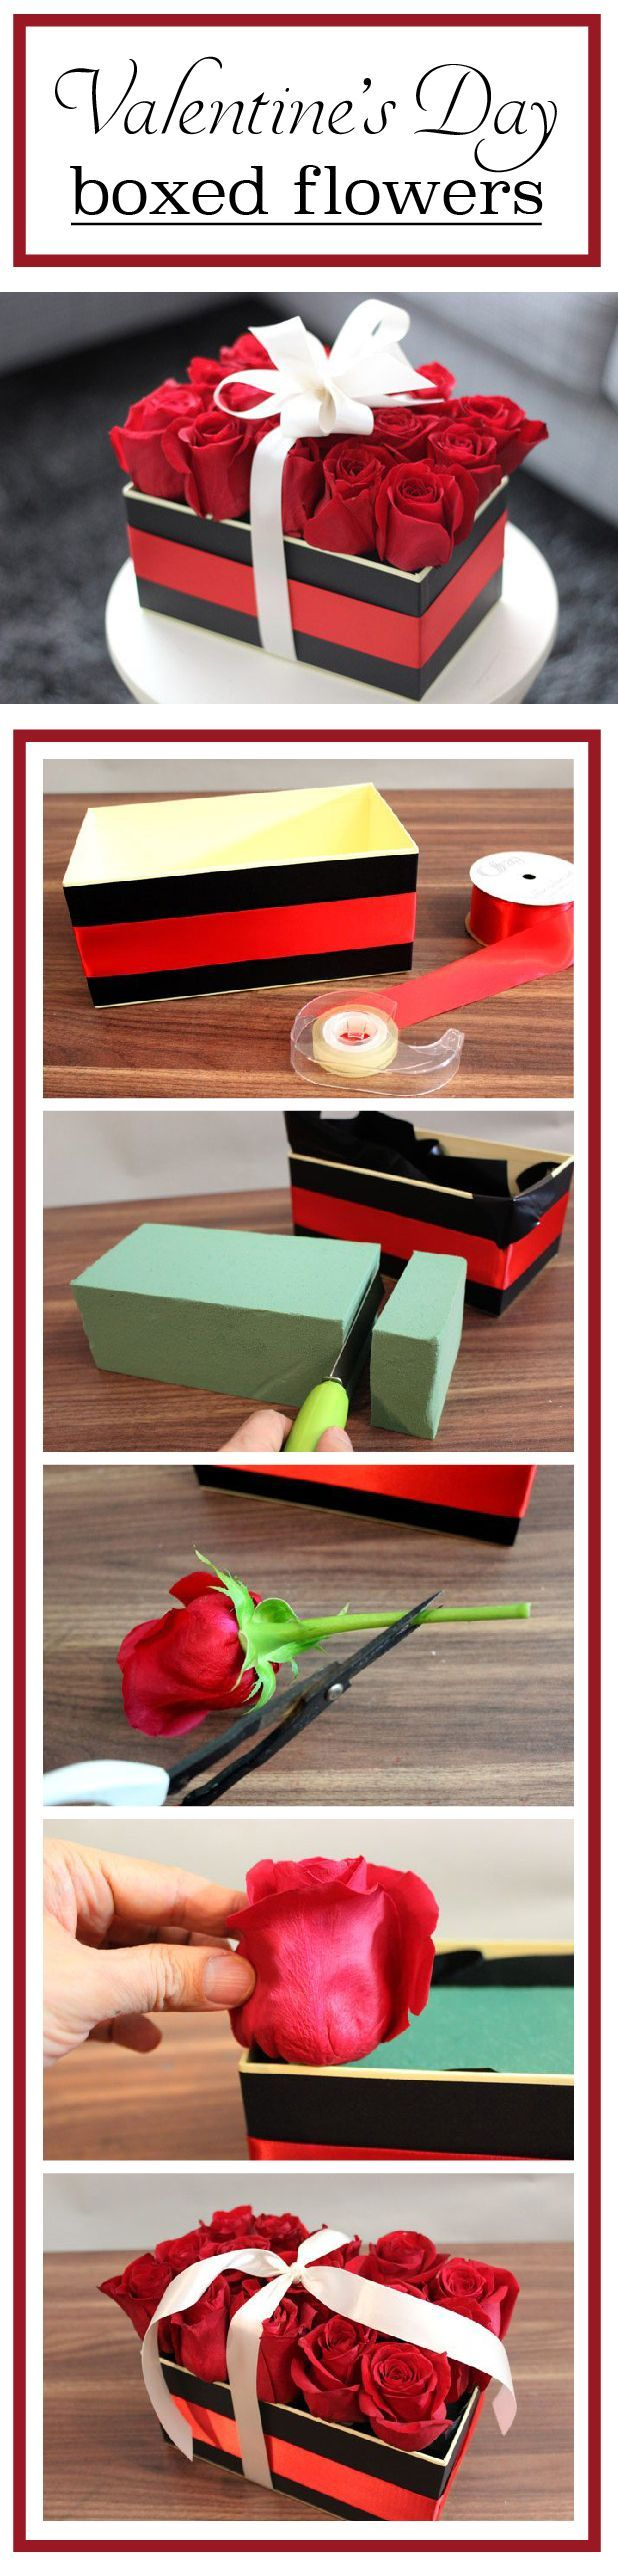 An easy DIY Valentine's Day arrangement! Boxed roses wrapped in a beautiful bow. the roses create the illusion of a flat rectangular box. This simple-to-make creation is the perfect centerpiece for a Valentine's Day gathering or a modern arrangement for that special someone. www.ehow.com/...